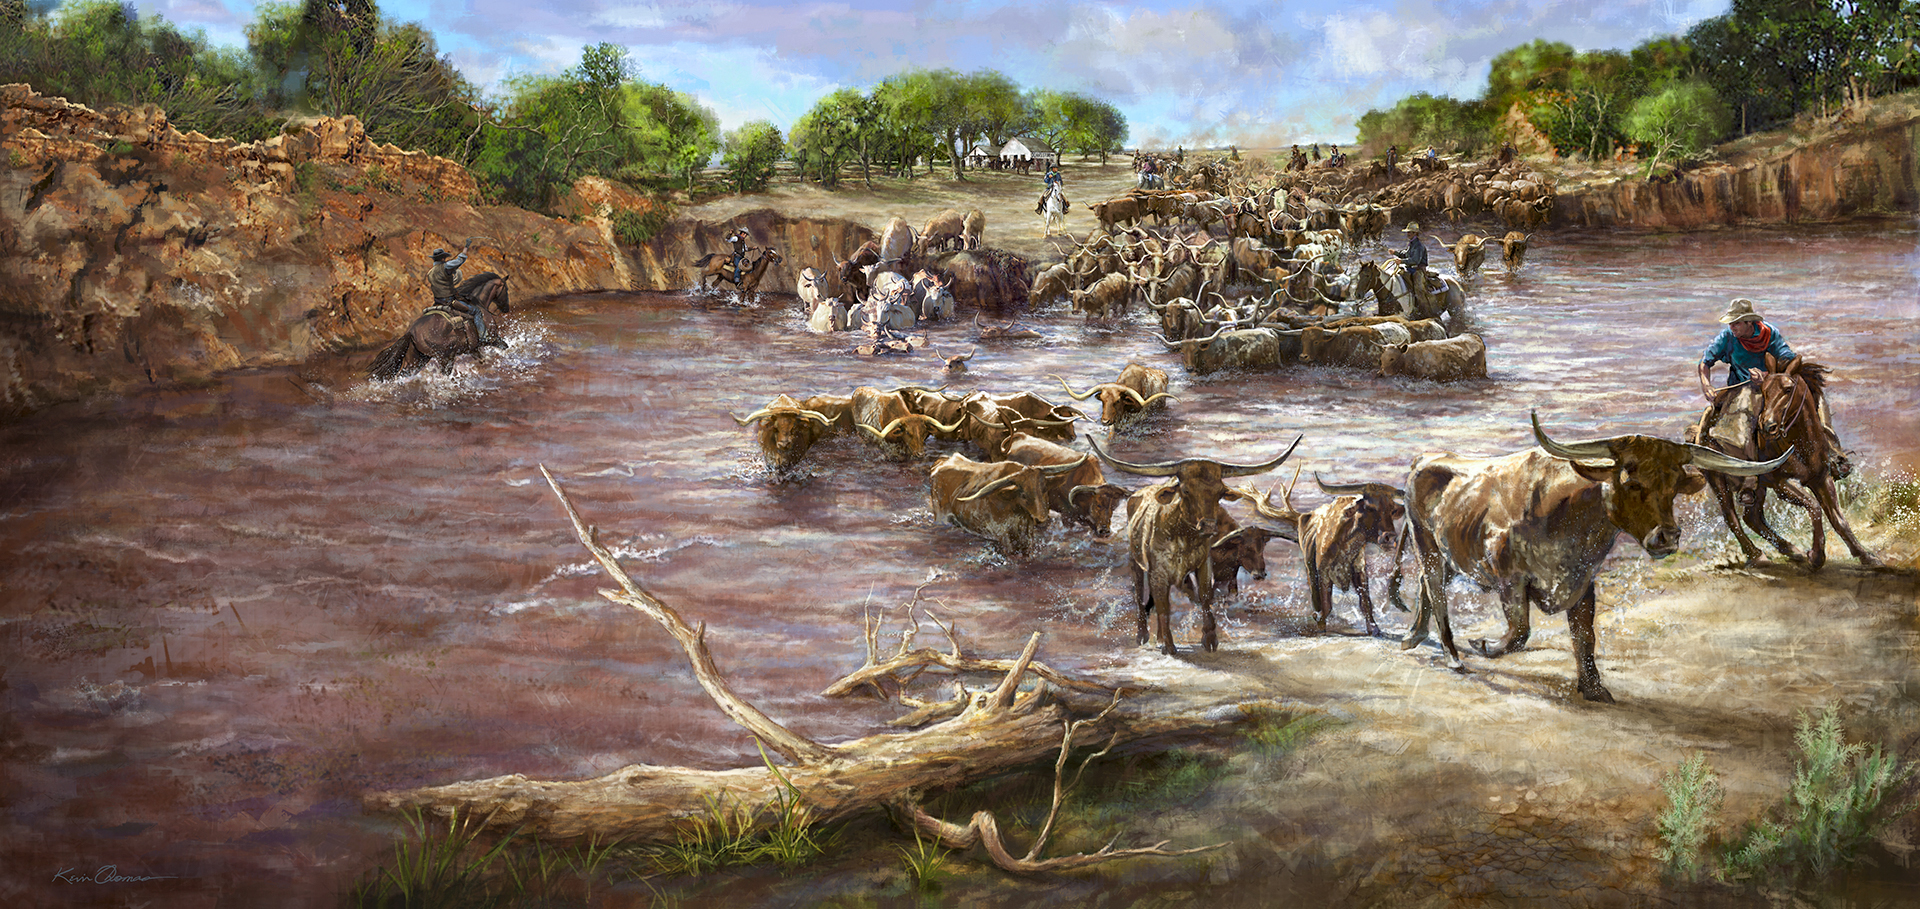 """Red River Mural"" • (full view) • 21' 11.5"" w by 10' h • Early 1880s Doan's Store with a Texas cattle drive crossing onto the Oklahoma's side of the riverbank. • Red River Valley Museum, Vernon, © KT"